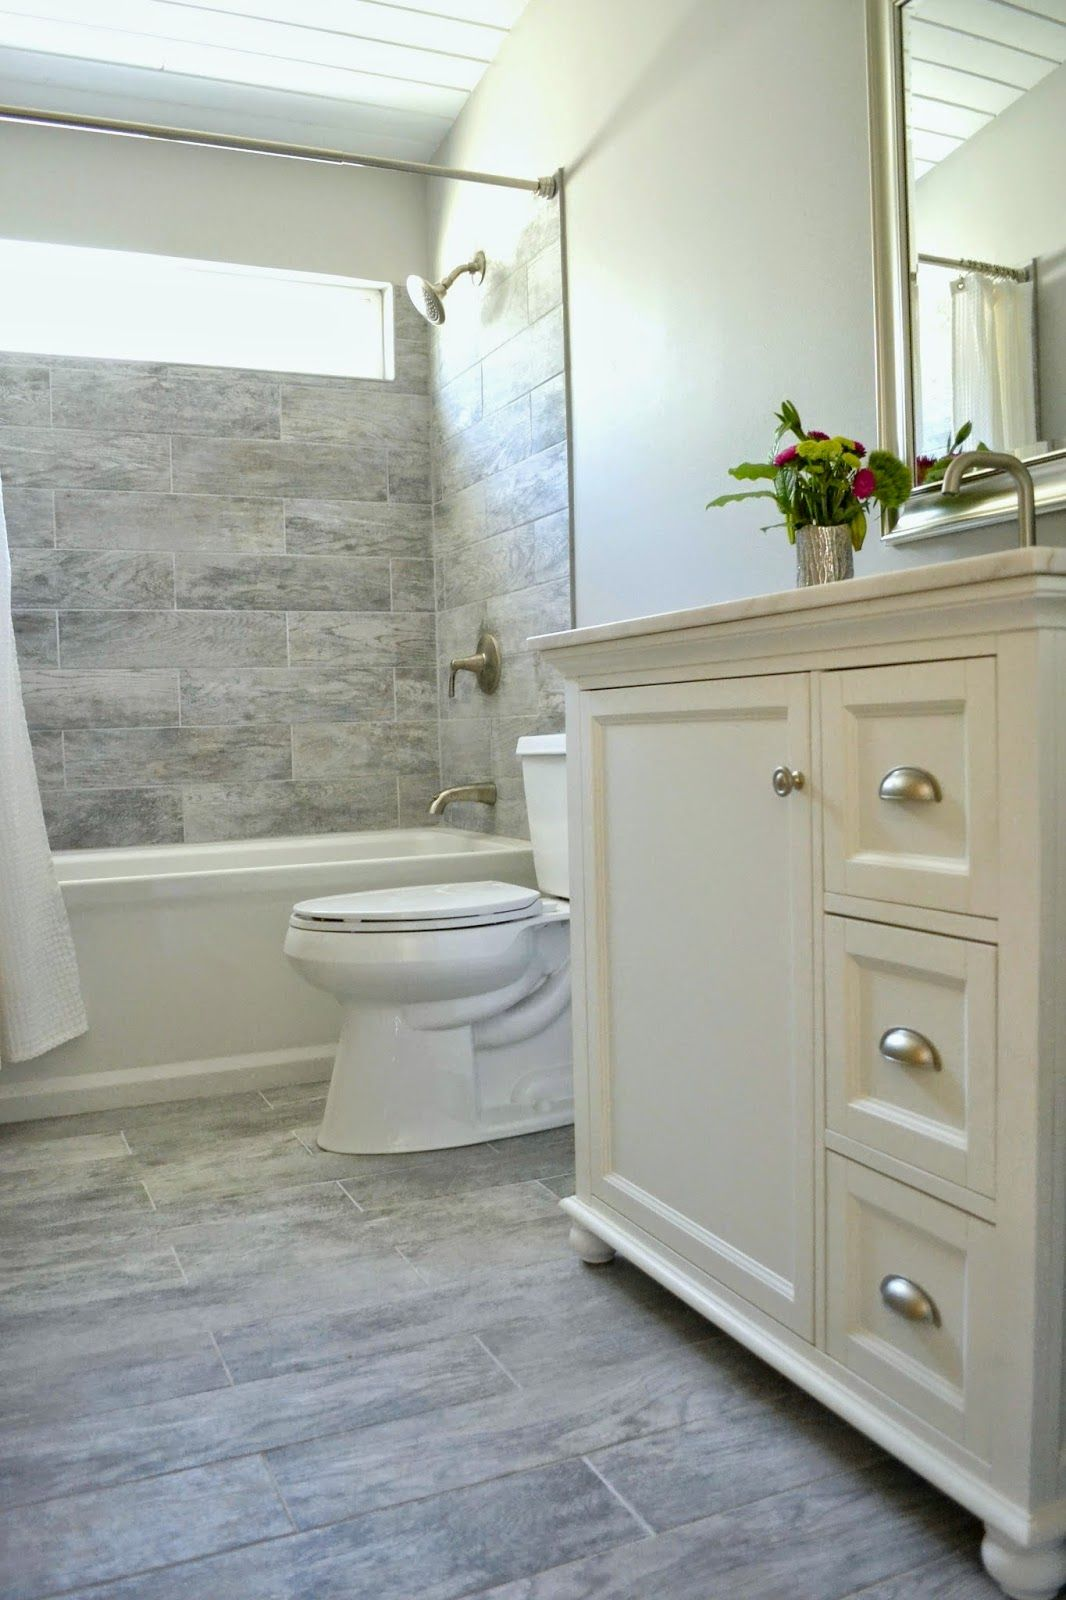 renovated our bathroom on a budget bathroom upgrades pinterest